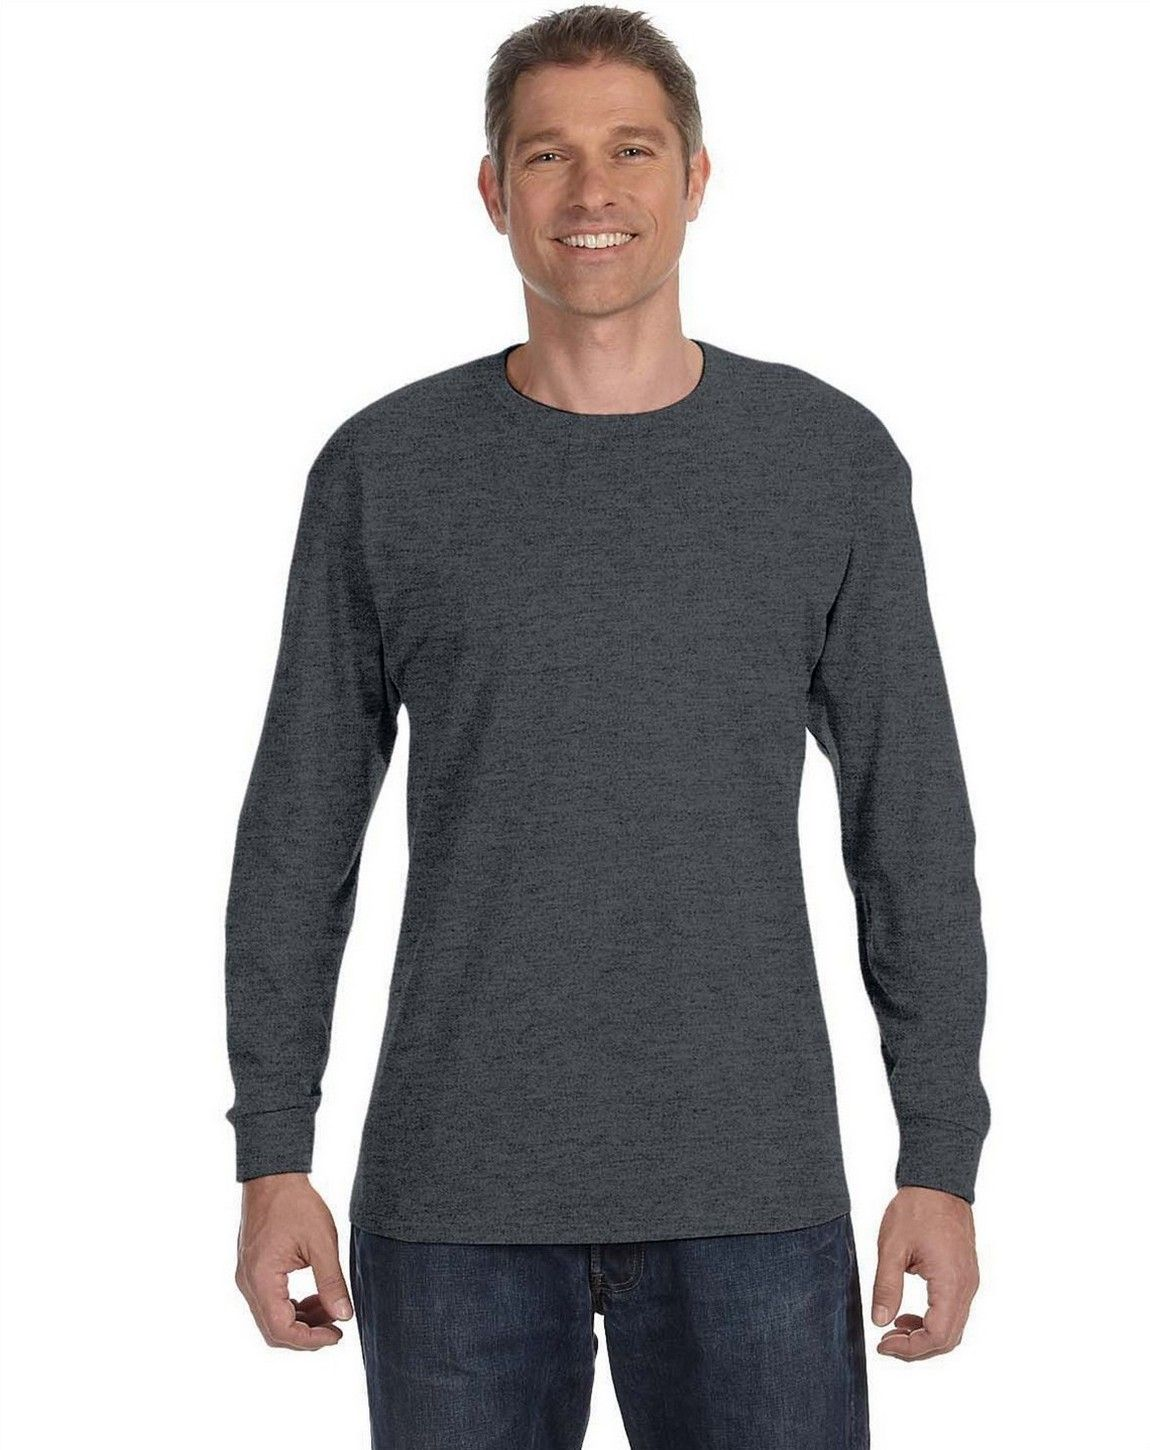 Hanes 5586 Tagless ComfortSoft Long-Sleeve T-Shirt